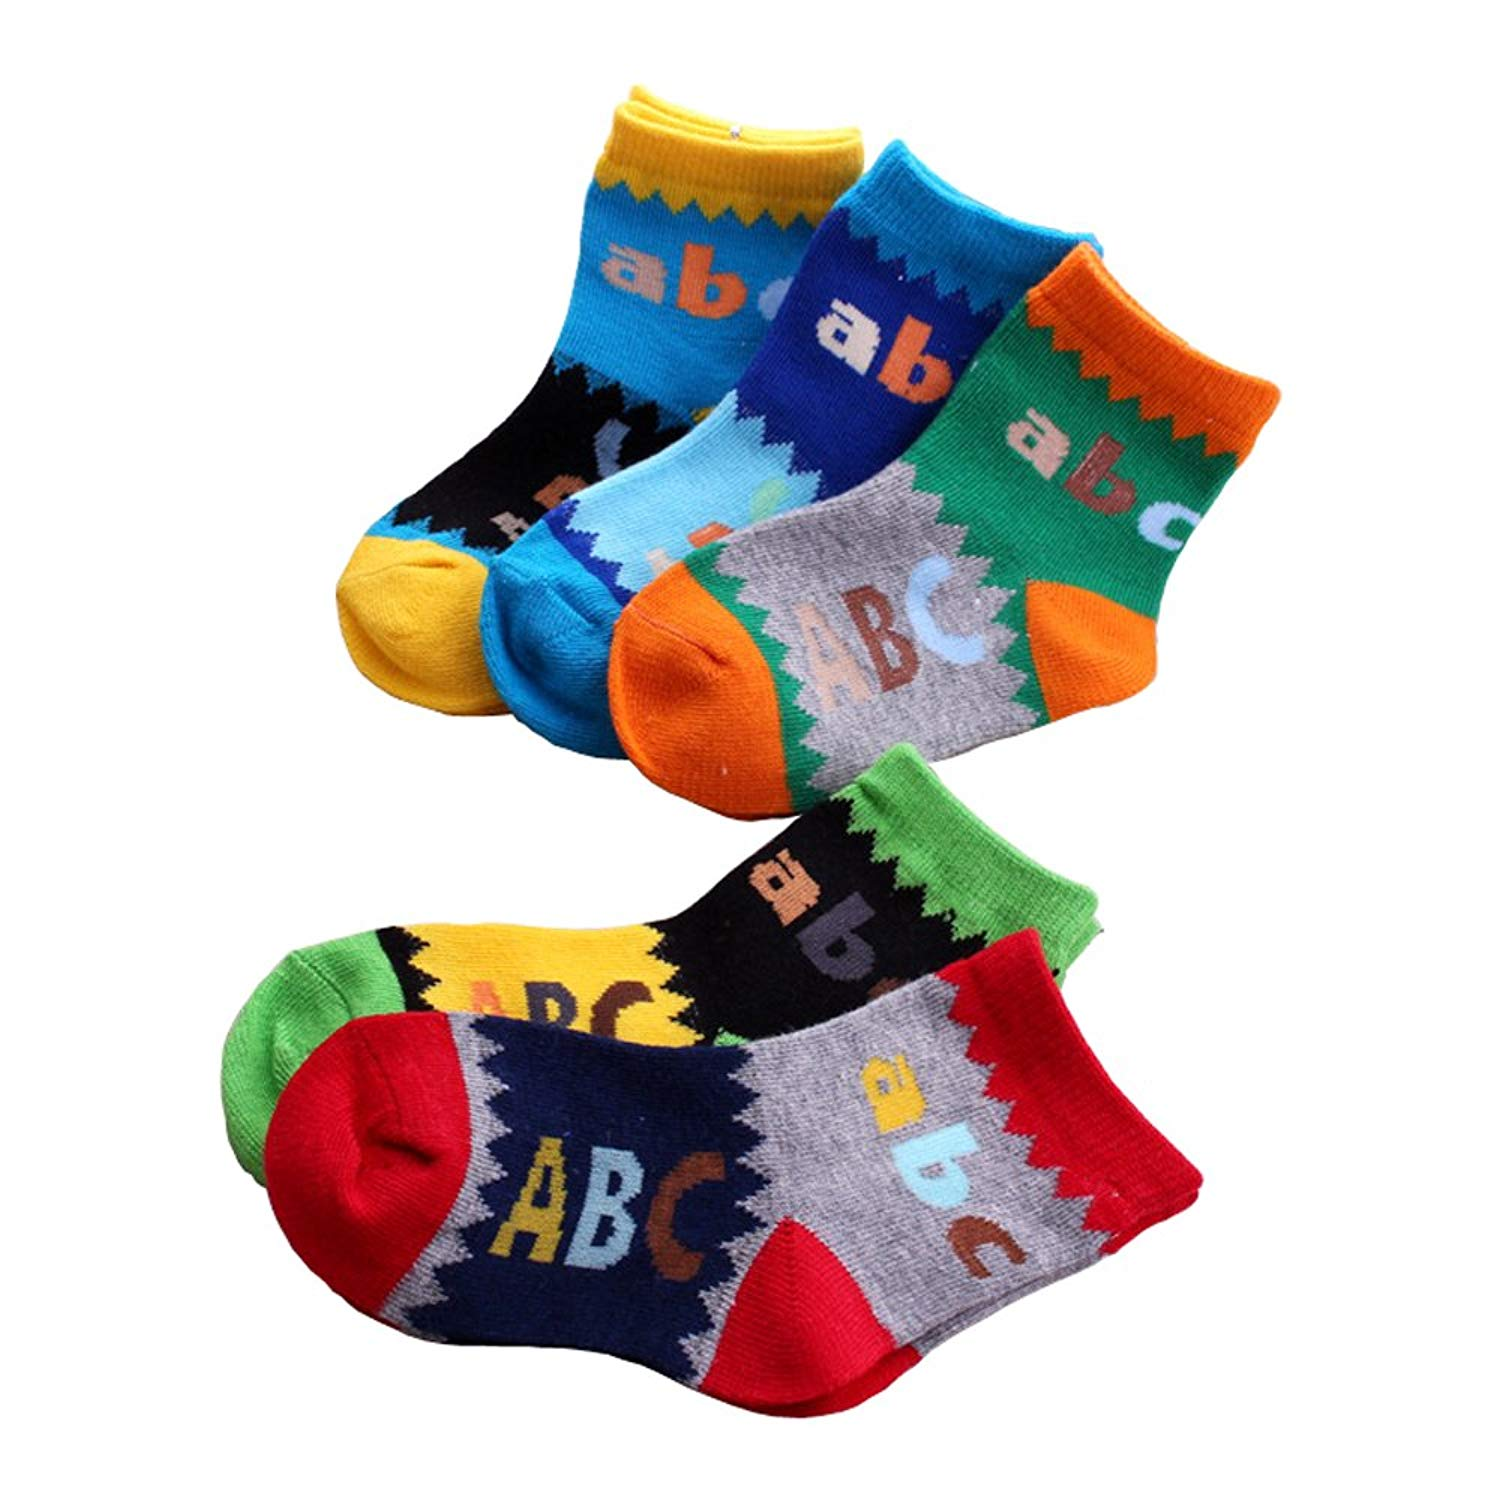 bf87fa4a85bc Get Quotations · MIUSIE Baby Boys/Girls Socks Bright Colored Combed cotton  socks Anti-skid Socks (